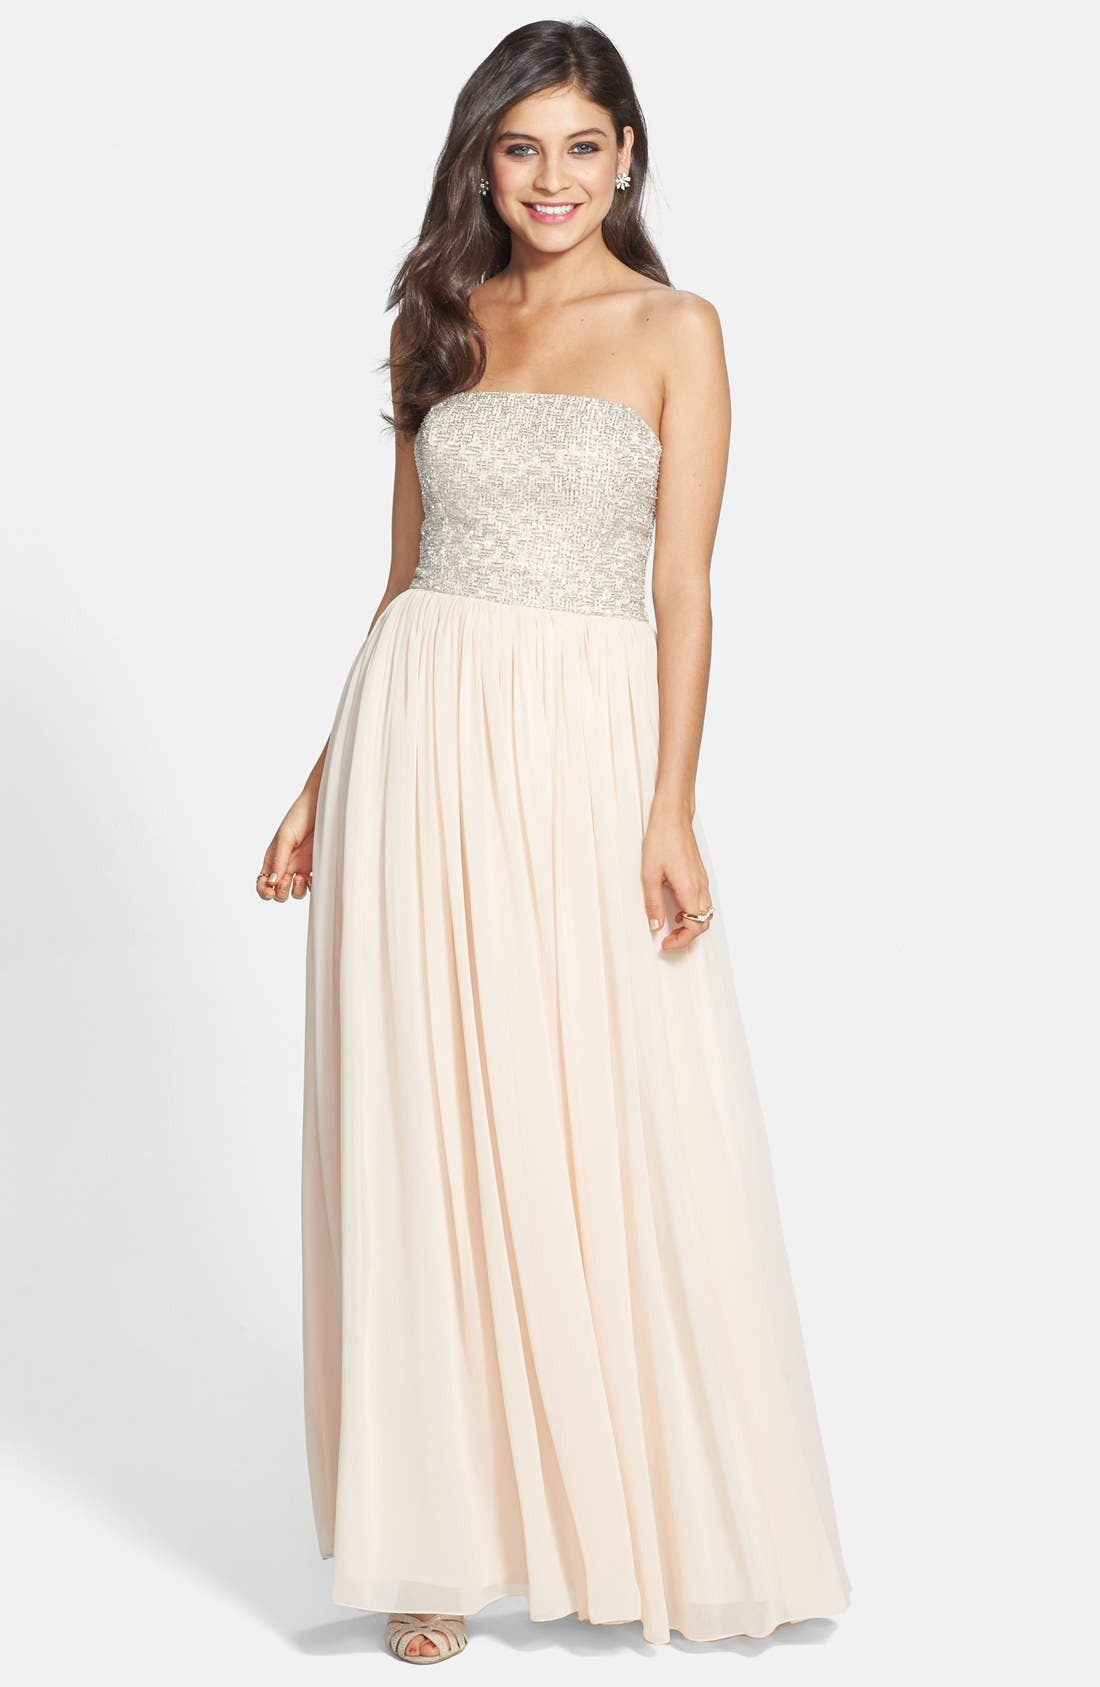 Main Image - Aidan Maddox Beaded Bodice Strapless Gown